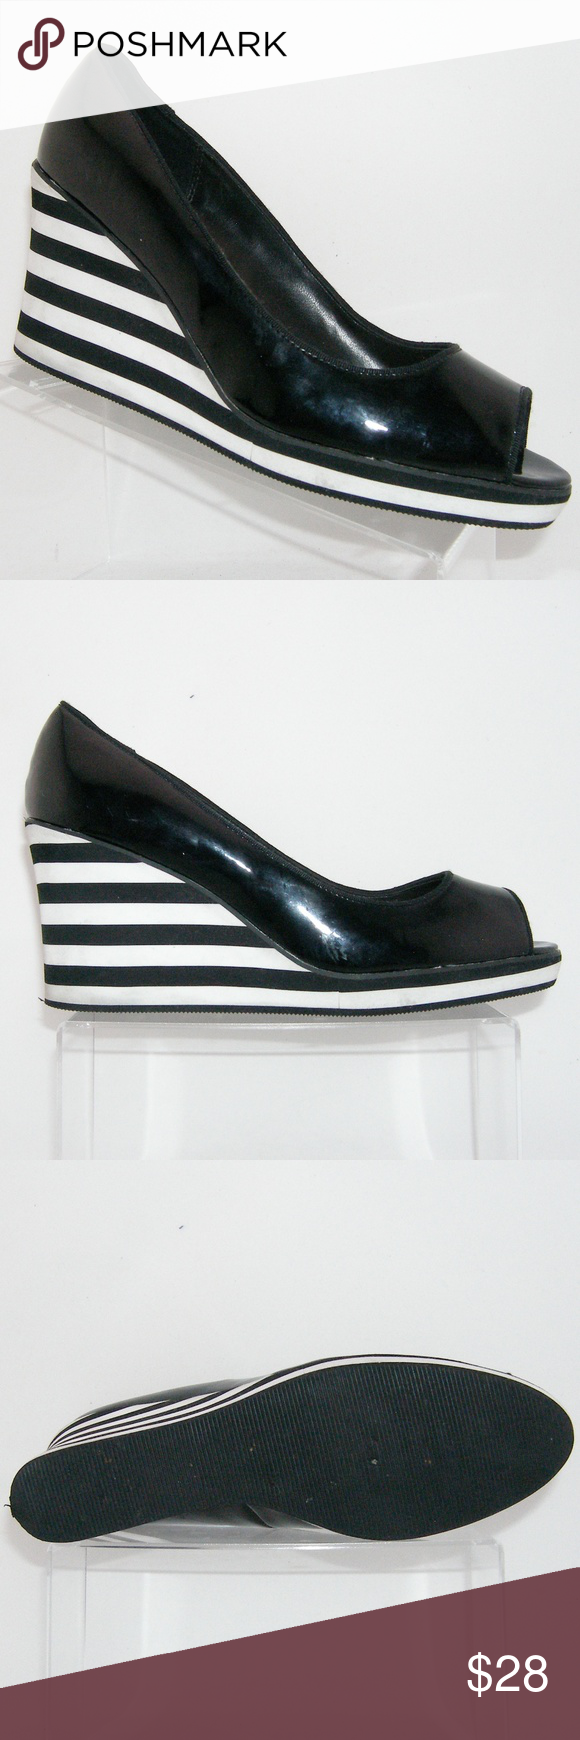 26e94b804d8 American Eagle black striped platform wedges 11 These America Eagle shoes  features a patent man made